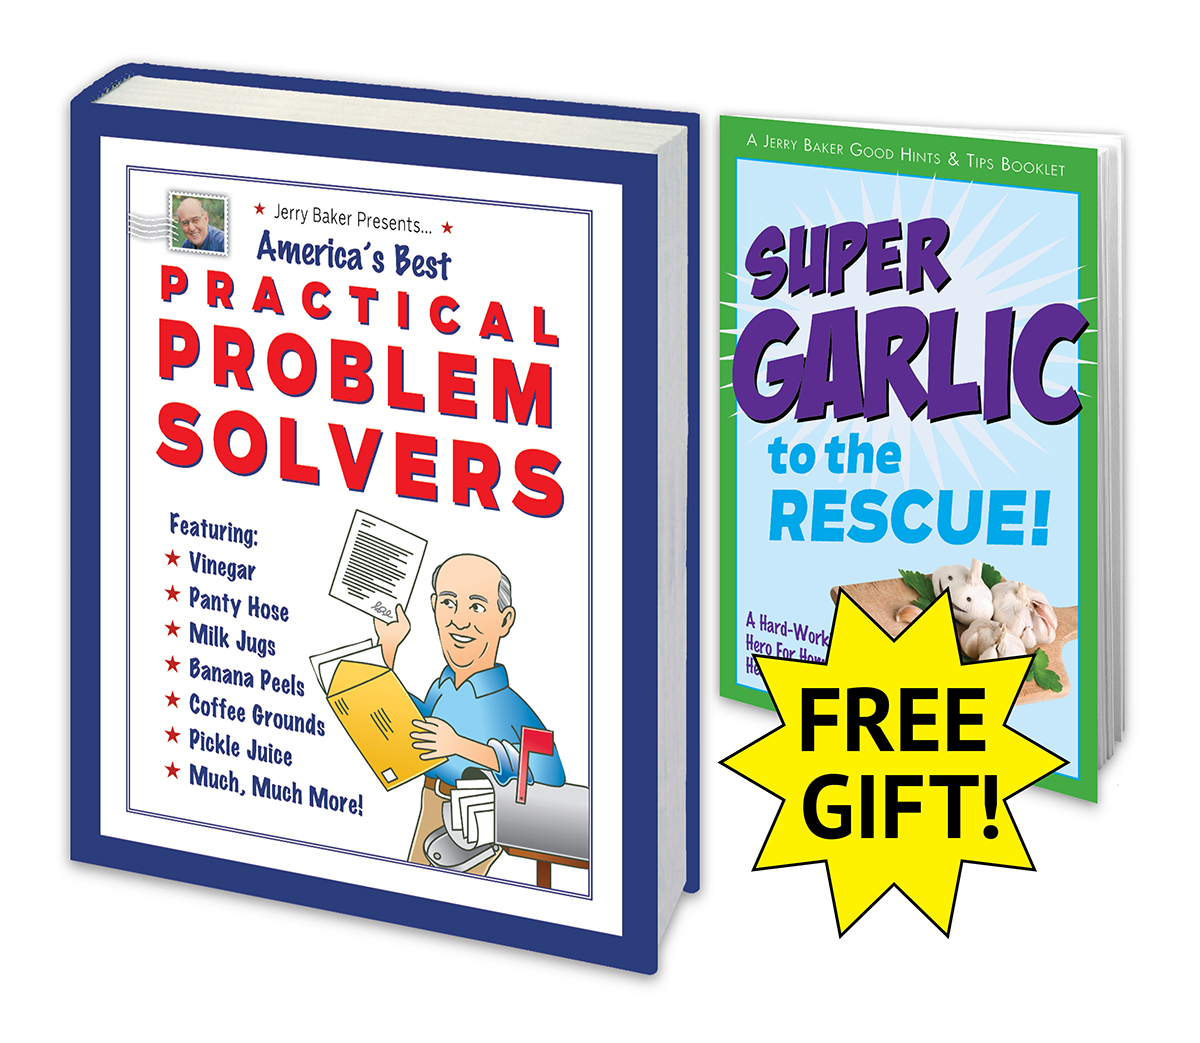 America's Best Practical Problem Solvers